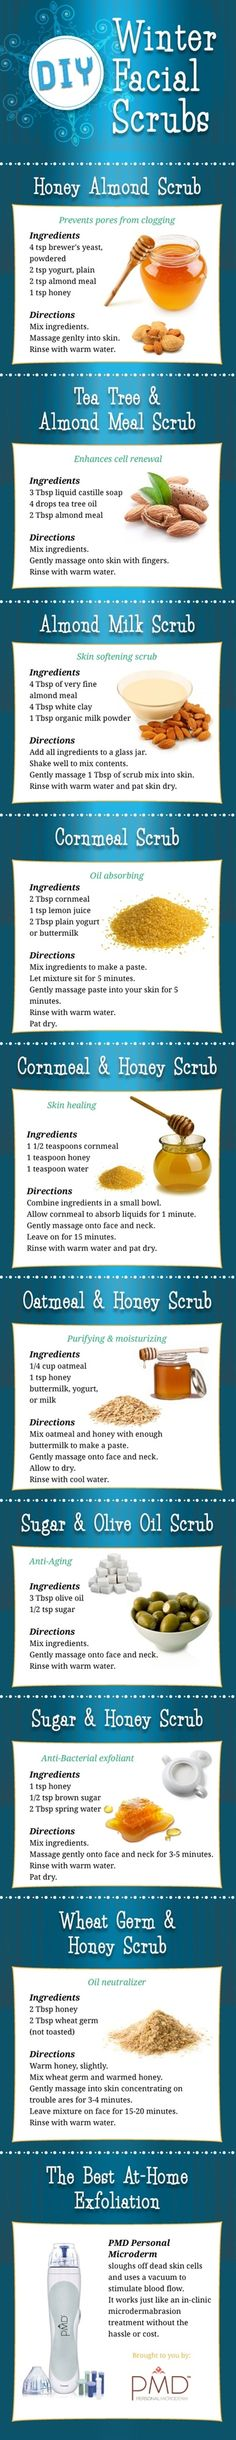 DIY Winter Facial Scrubs,Skin need a pick me up this winter? Try one of the DIY Winter Facial Scrubs on the info-graphic. Beauty Care, Beauty Skin, Hair Beauty, Beauty Myth, Beauty Secrets, Beauty Hacks, Beauty Tutorials, Just In Case, Just For You